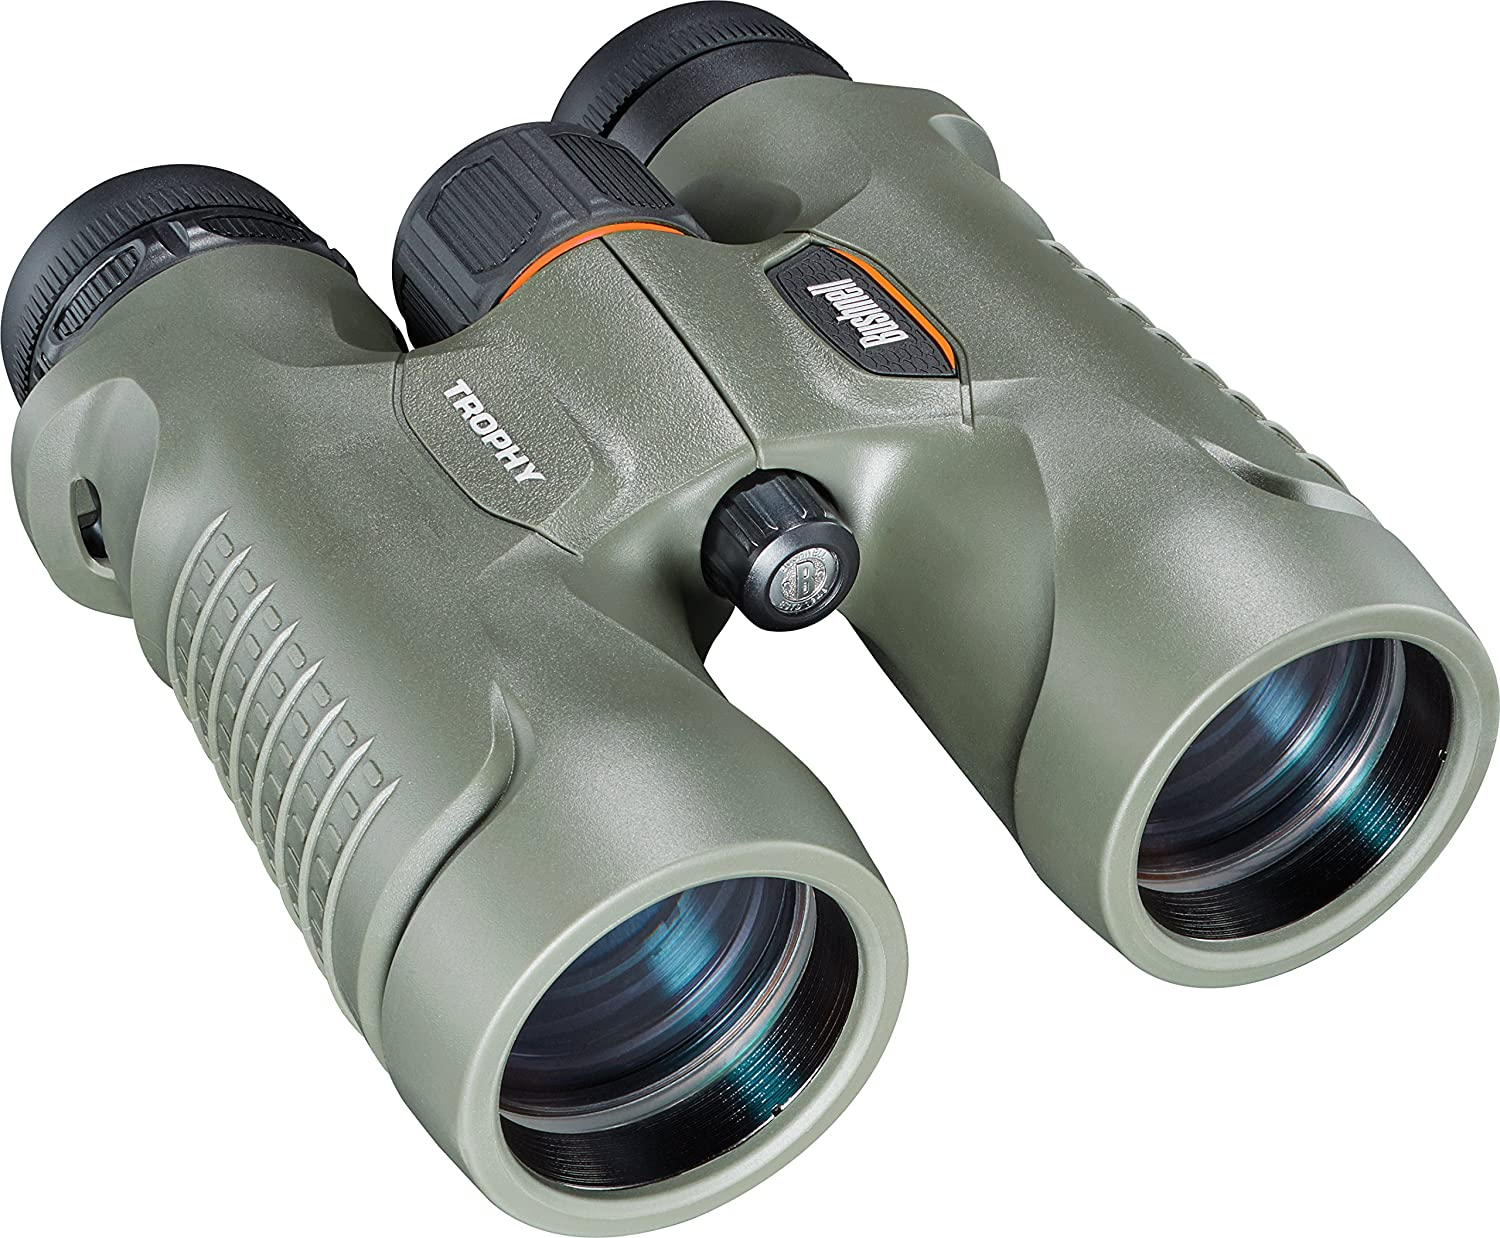 Bushnell Trophy Binocular, Green, 8 x 42mm